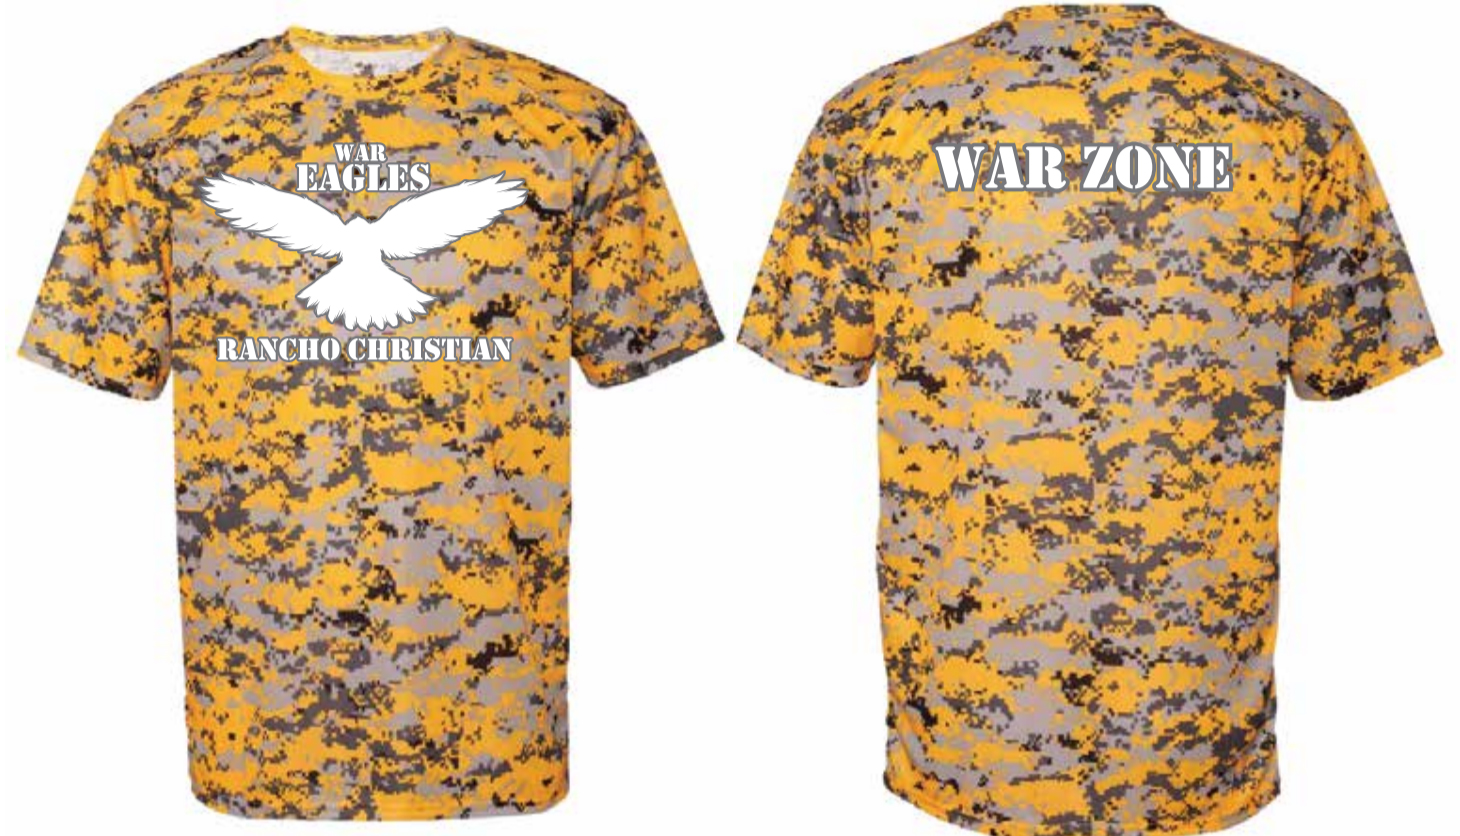 War eagles shirt web